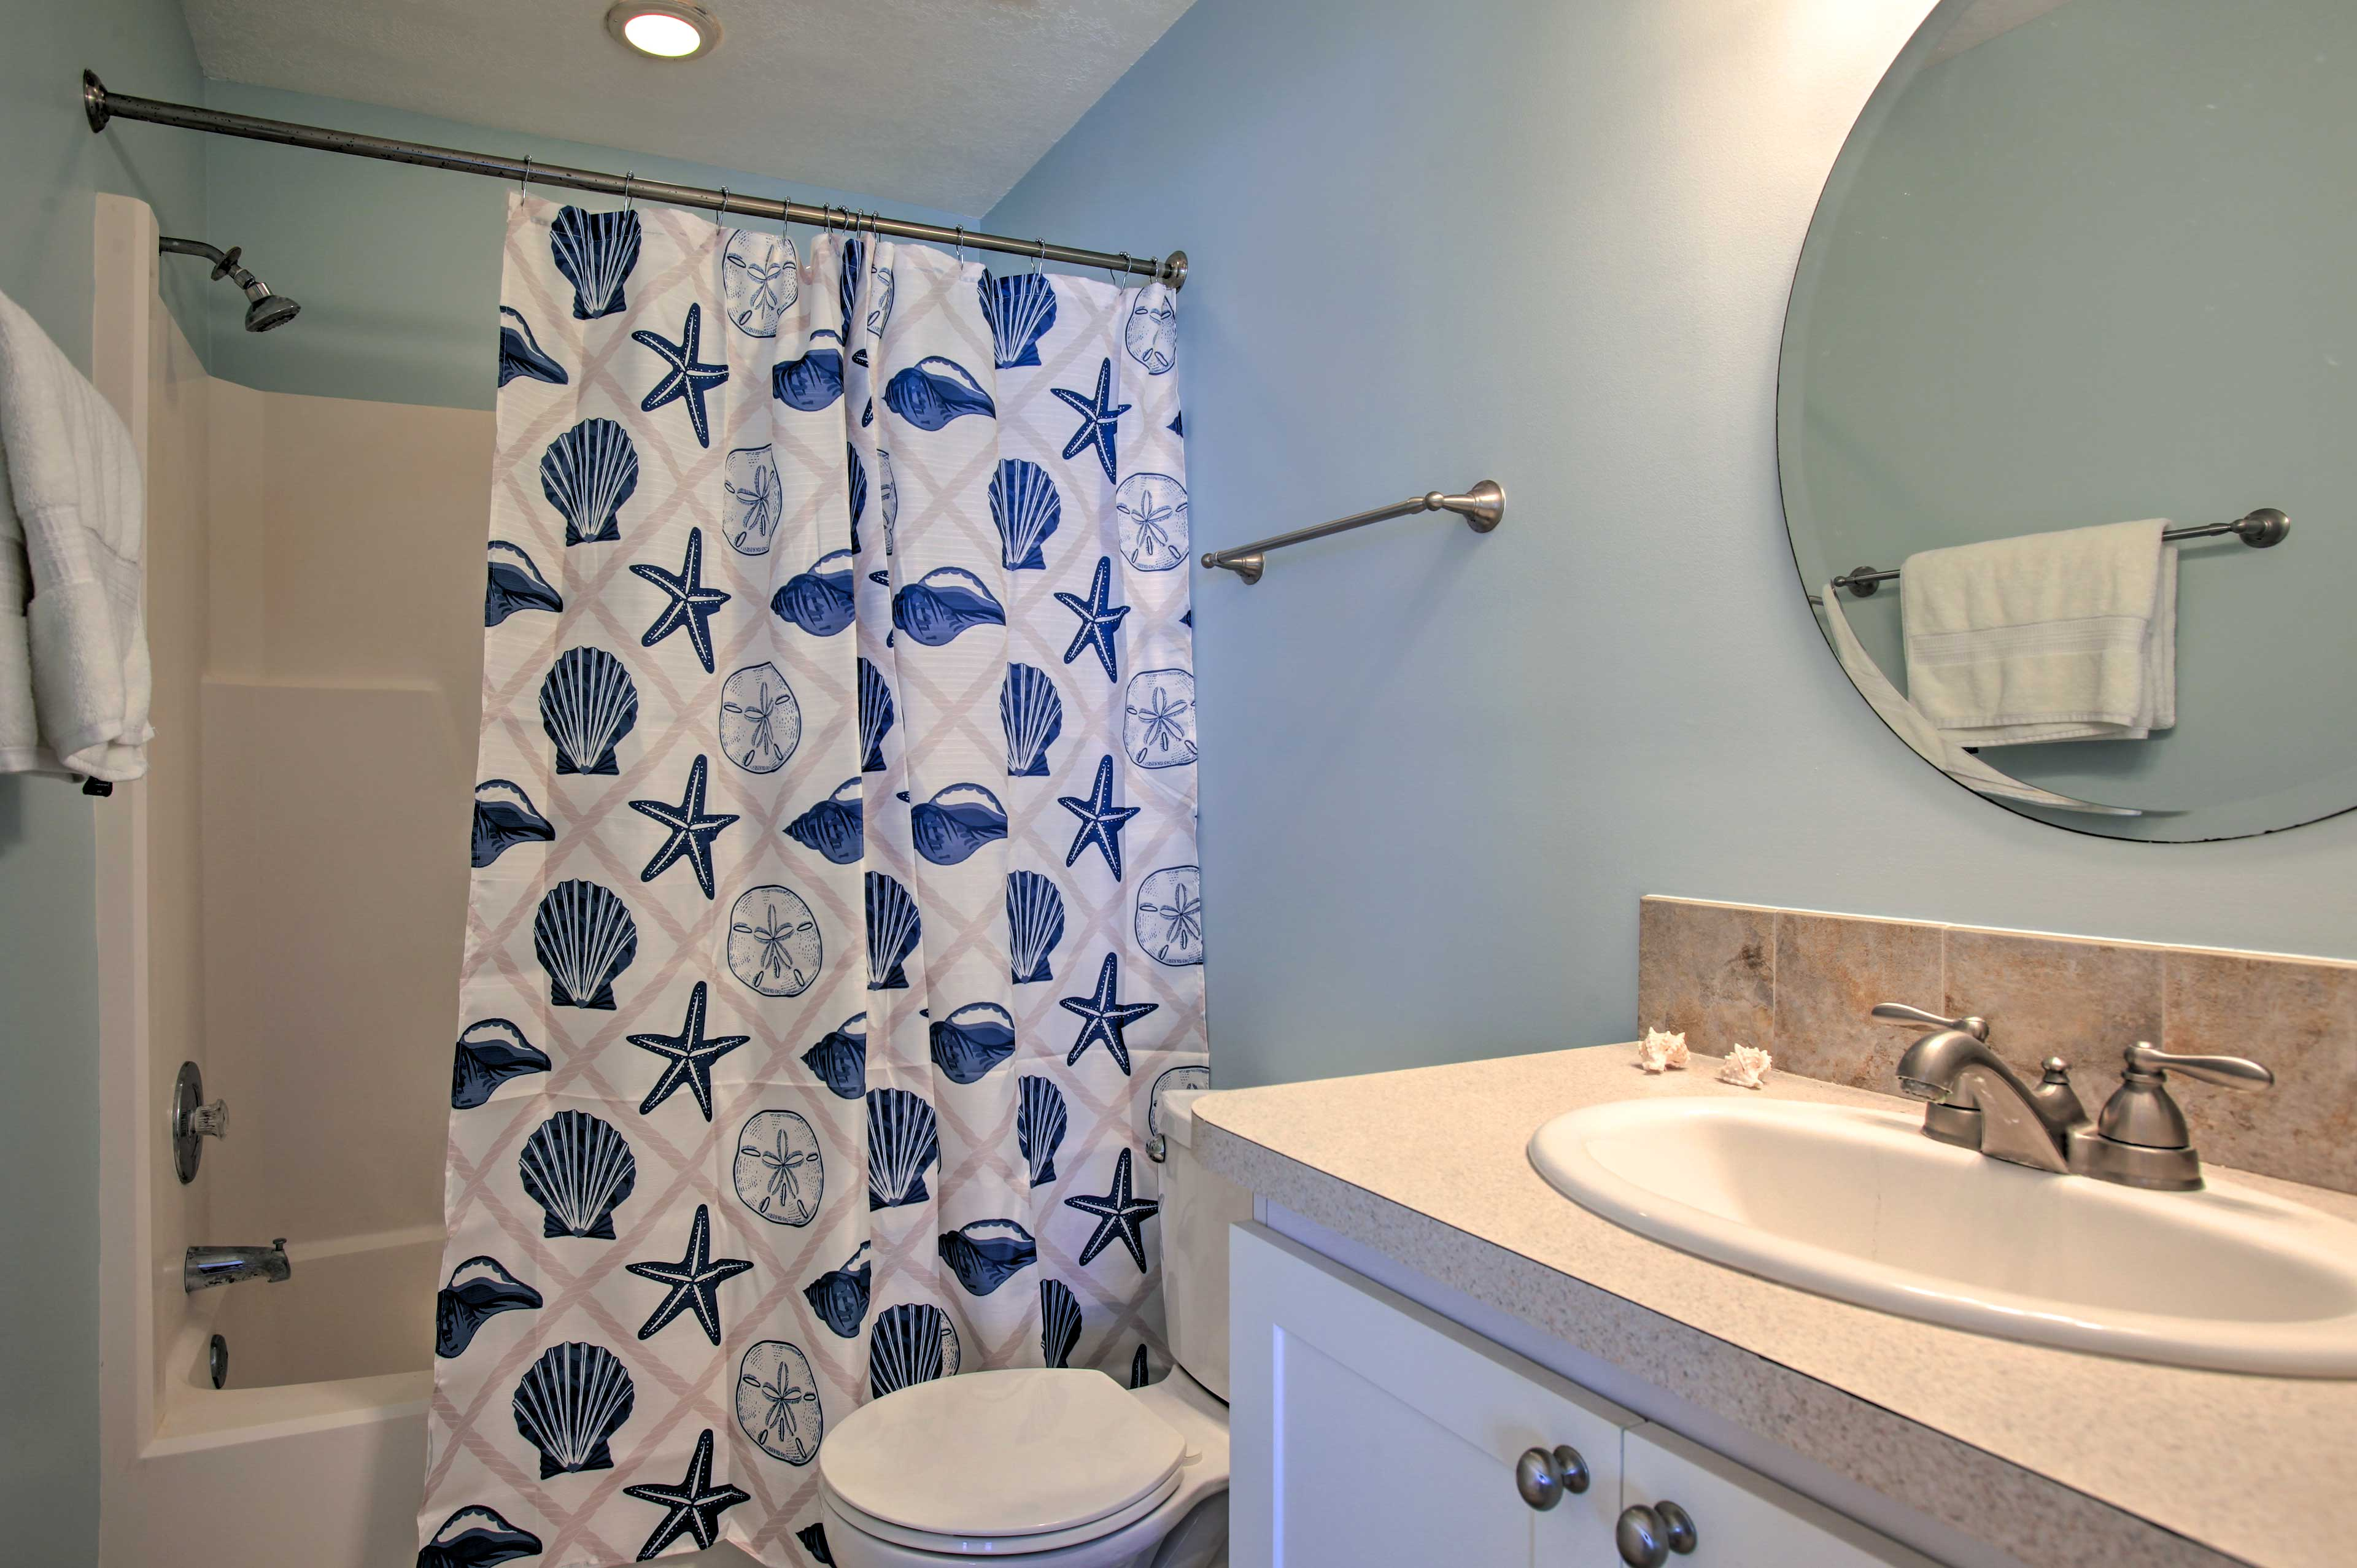 Rinse off in the shower/tub combo behind the seashell curtain.